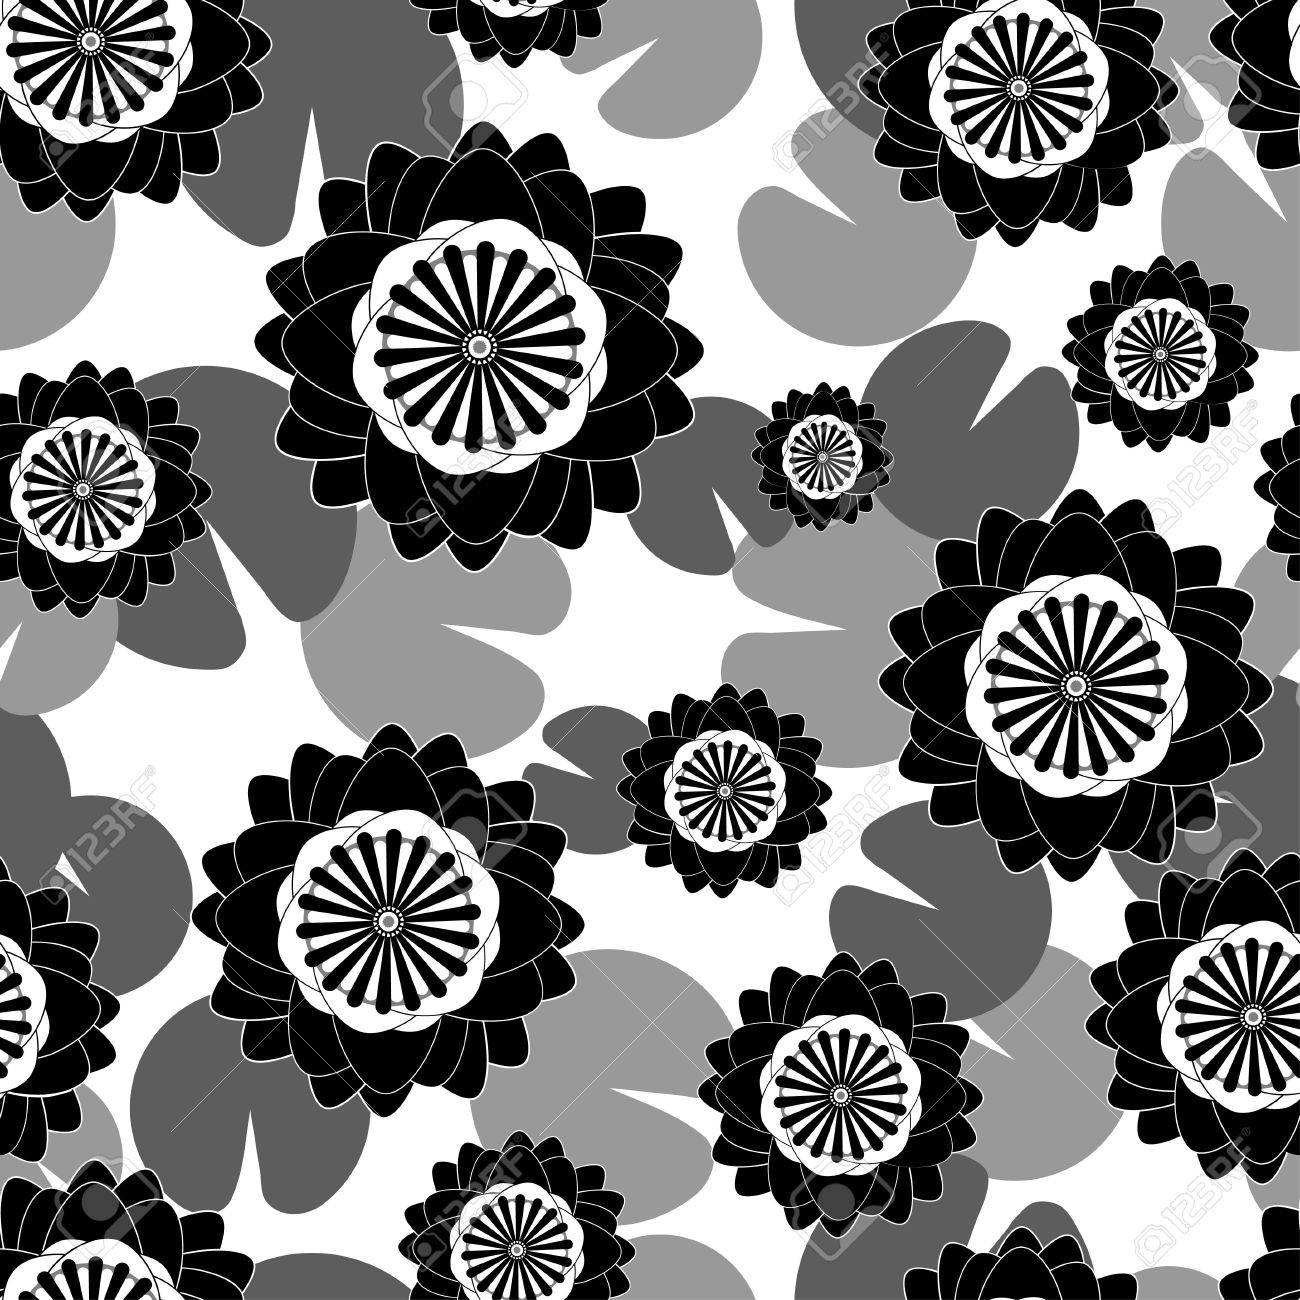 Flower Water Lily Seamless Pattern Monochrome For Fabric Print